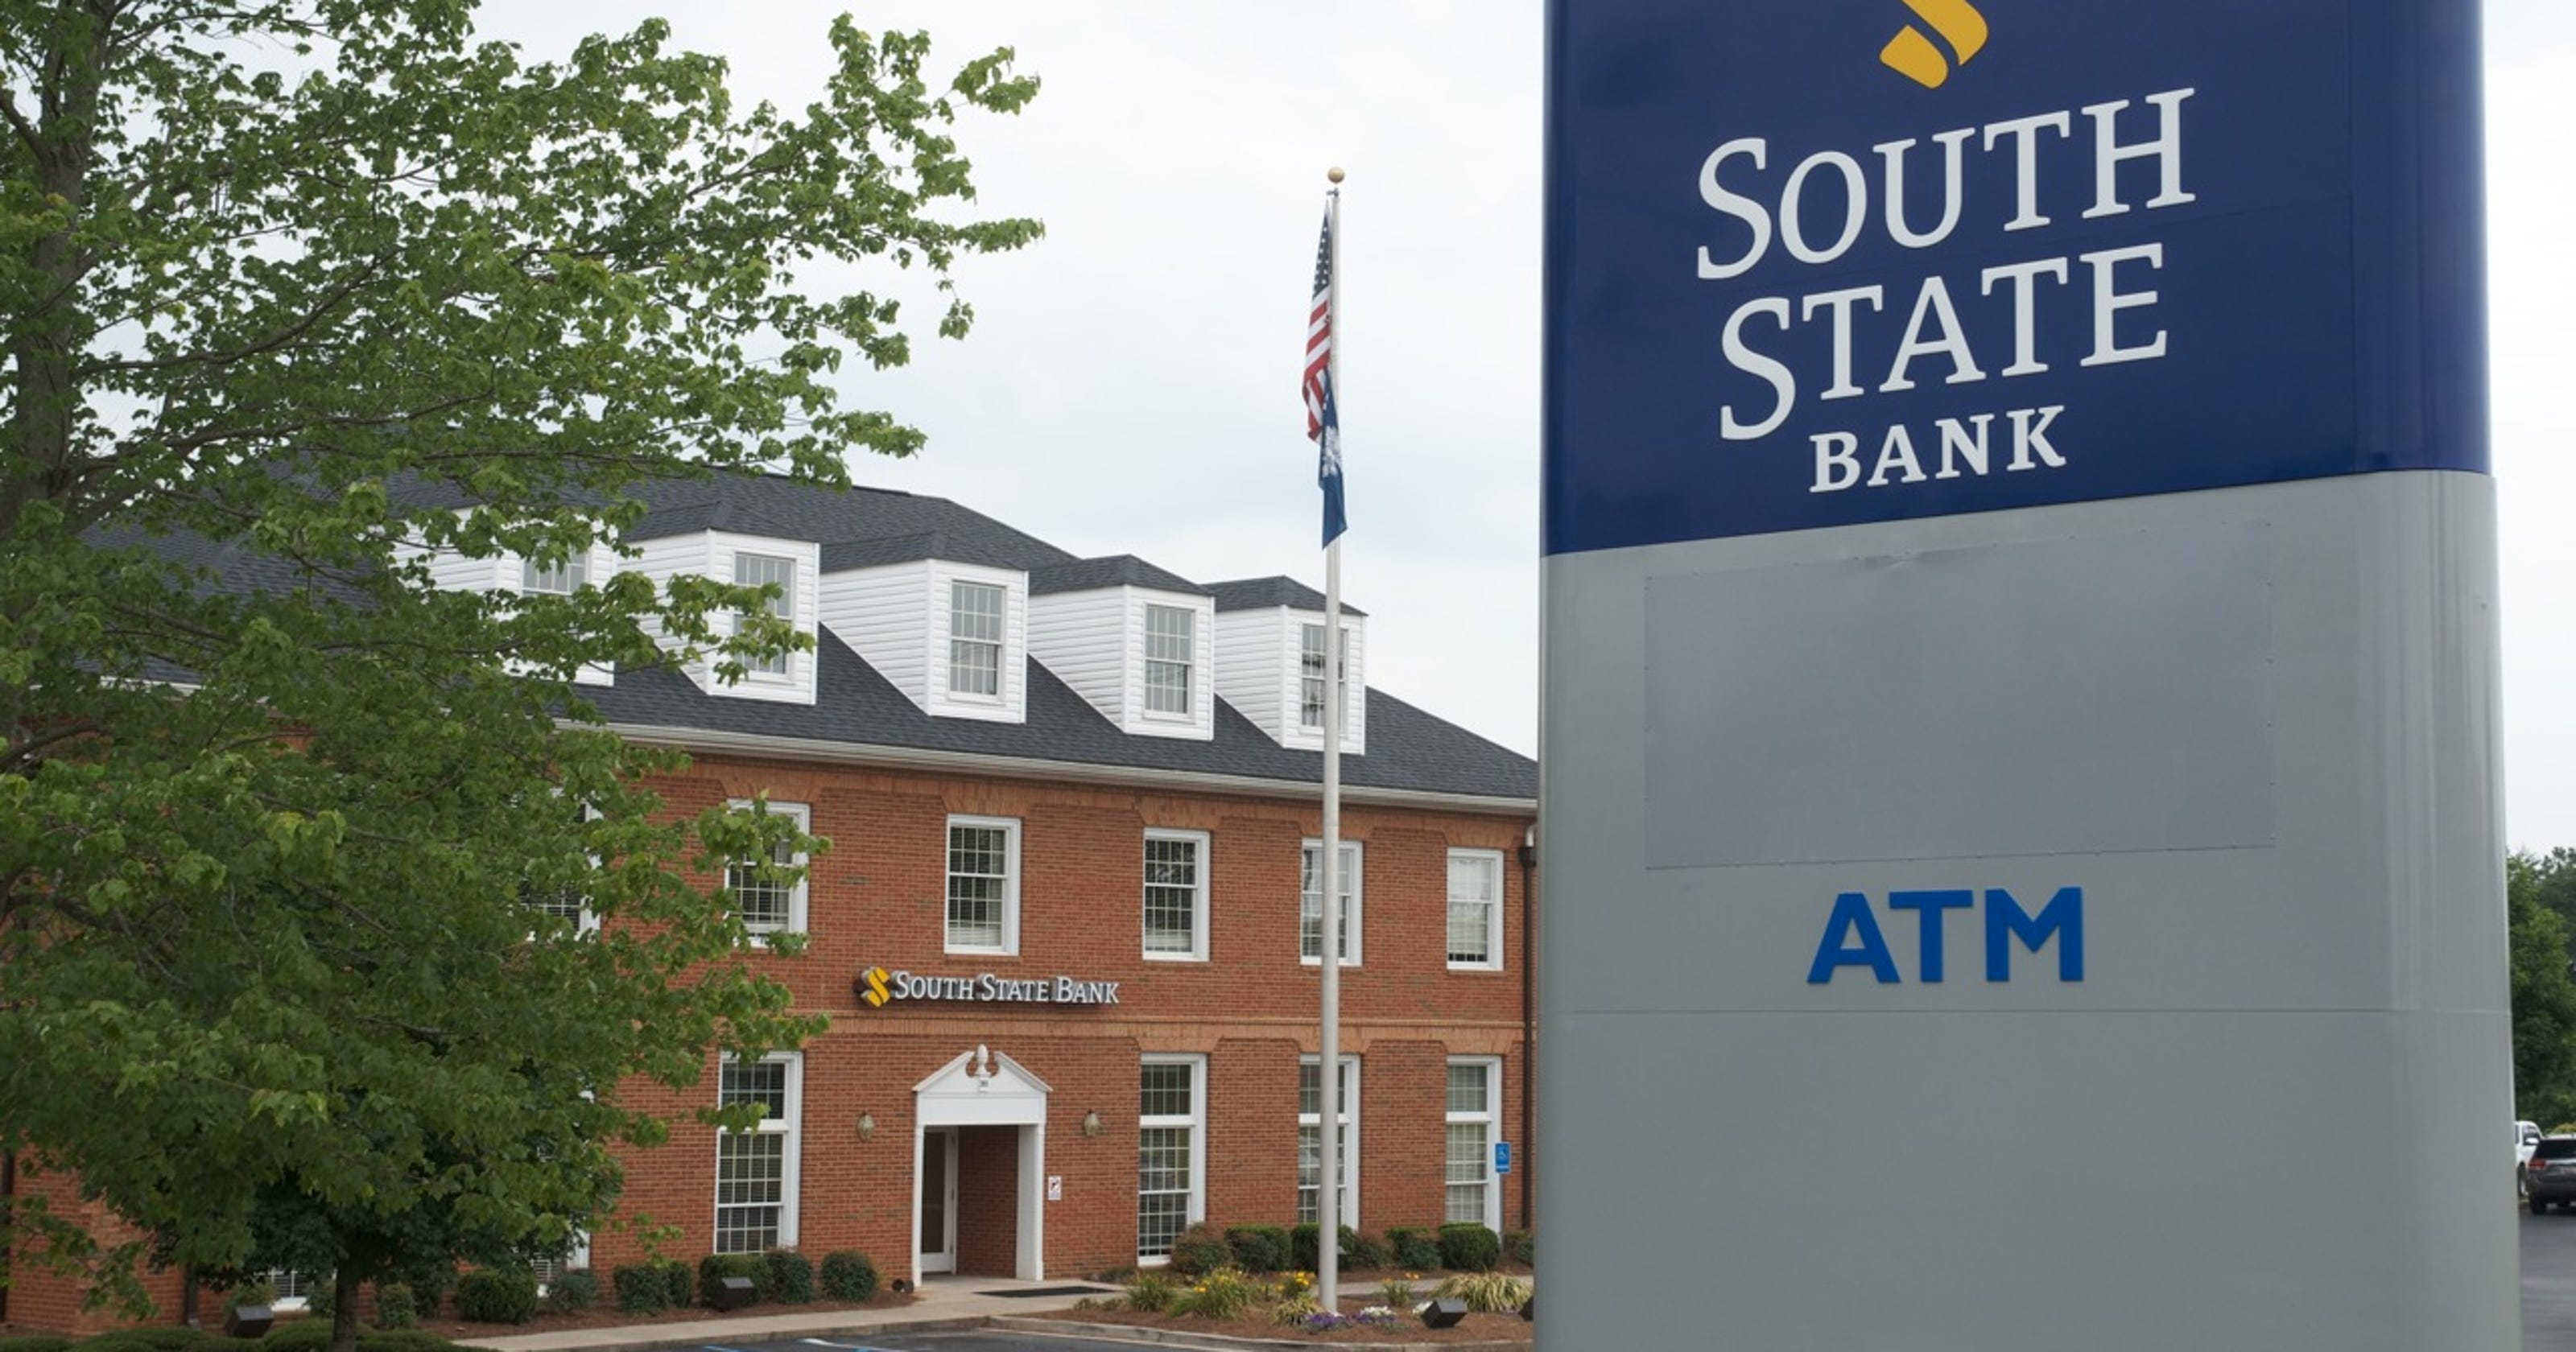 Bank unveils new signage to reflect name change